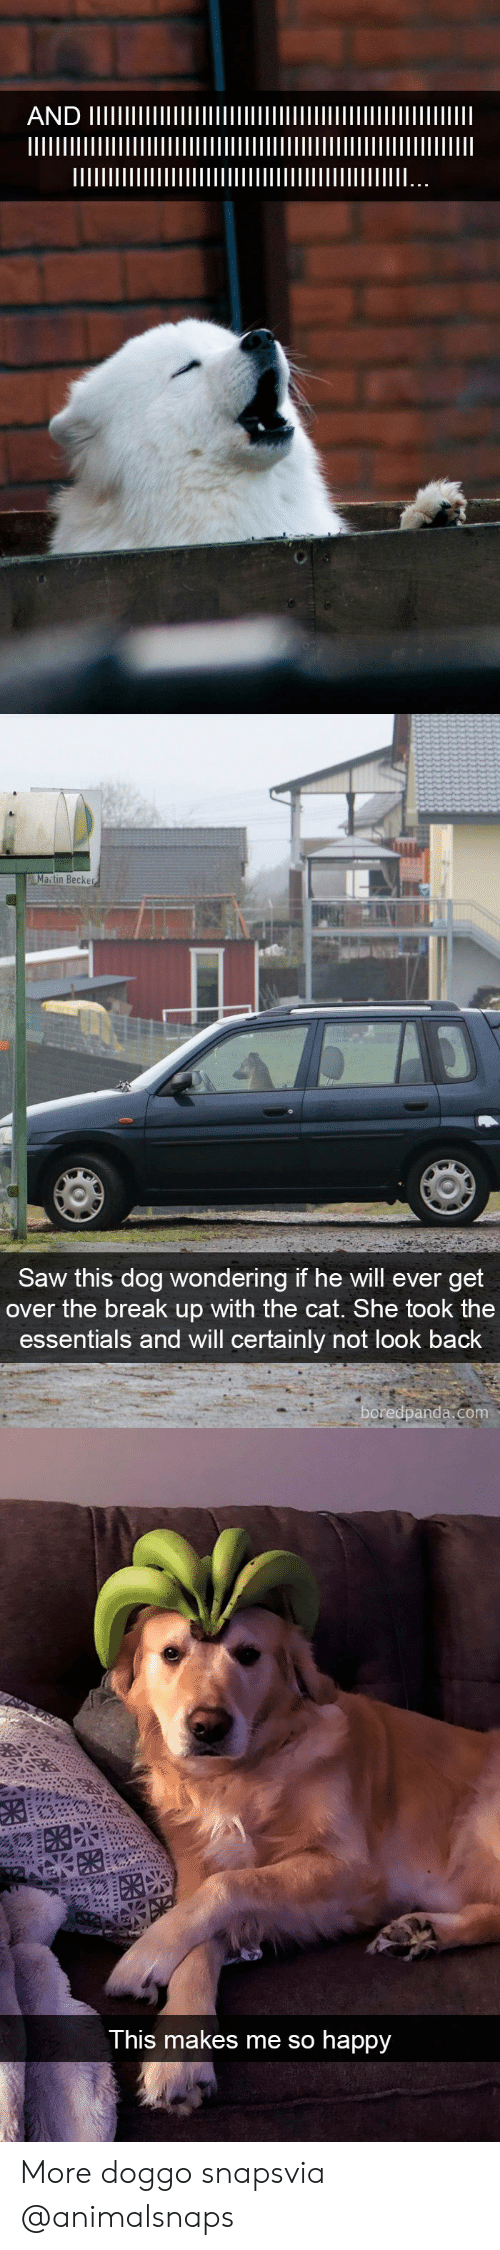 essentials: Matin Becker  Saw this dog wondering if he will ever get  over the break up with the cat. She took the  essentials and will certainly not look back  oredpanda.com   This makes me so happy More doggo snapsvia @animalsnaps